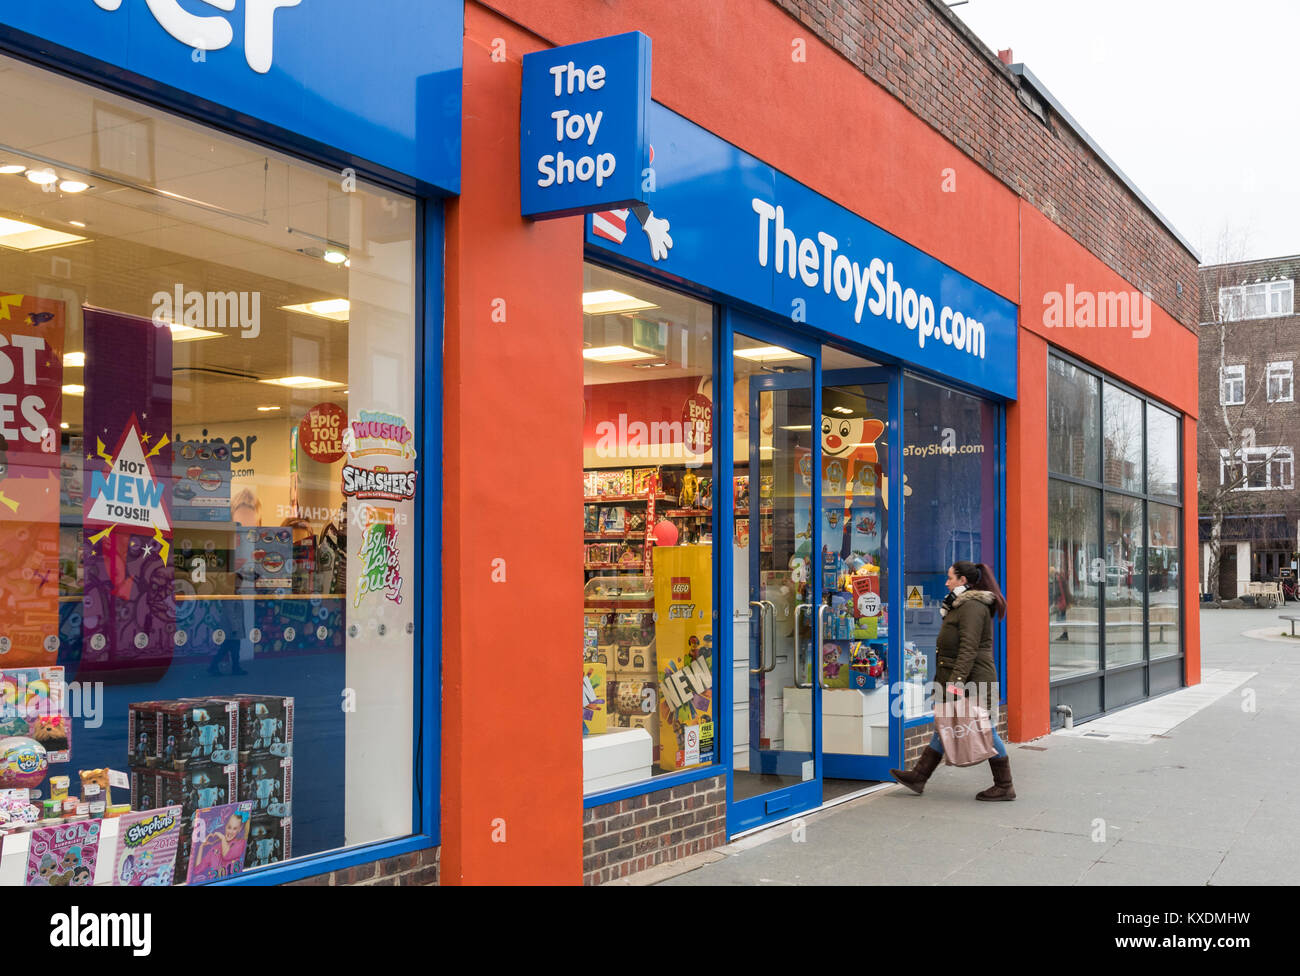 The Toy Shop front entrance in Horsham, West Sussex, England, UK. - Stock Image